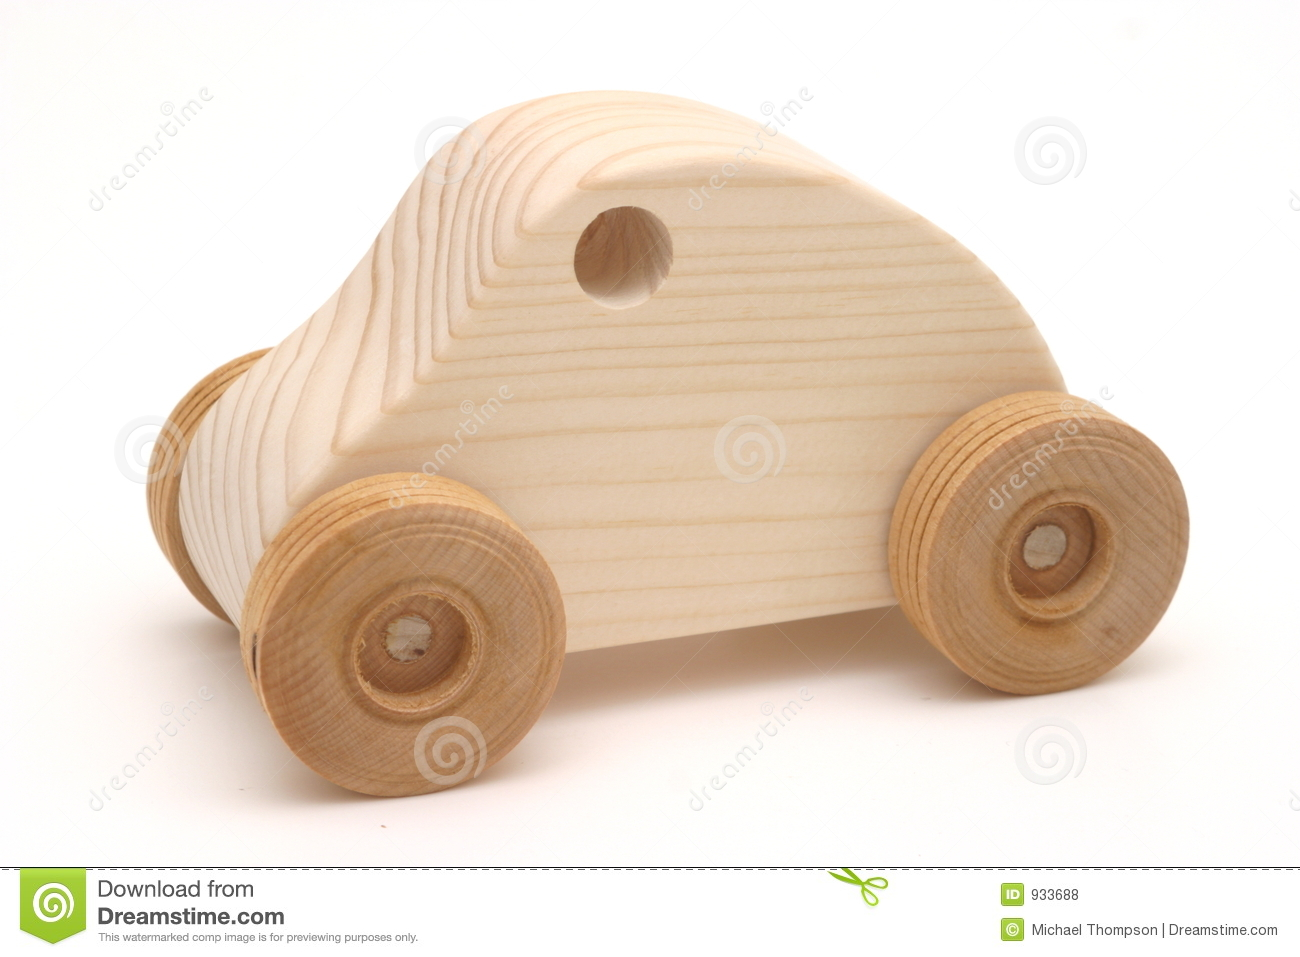 Wooden Toy Car Royalty Free Stock Photos - Image: 933688